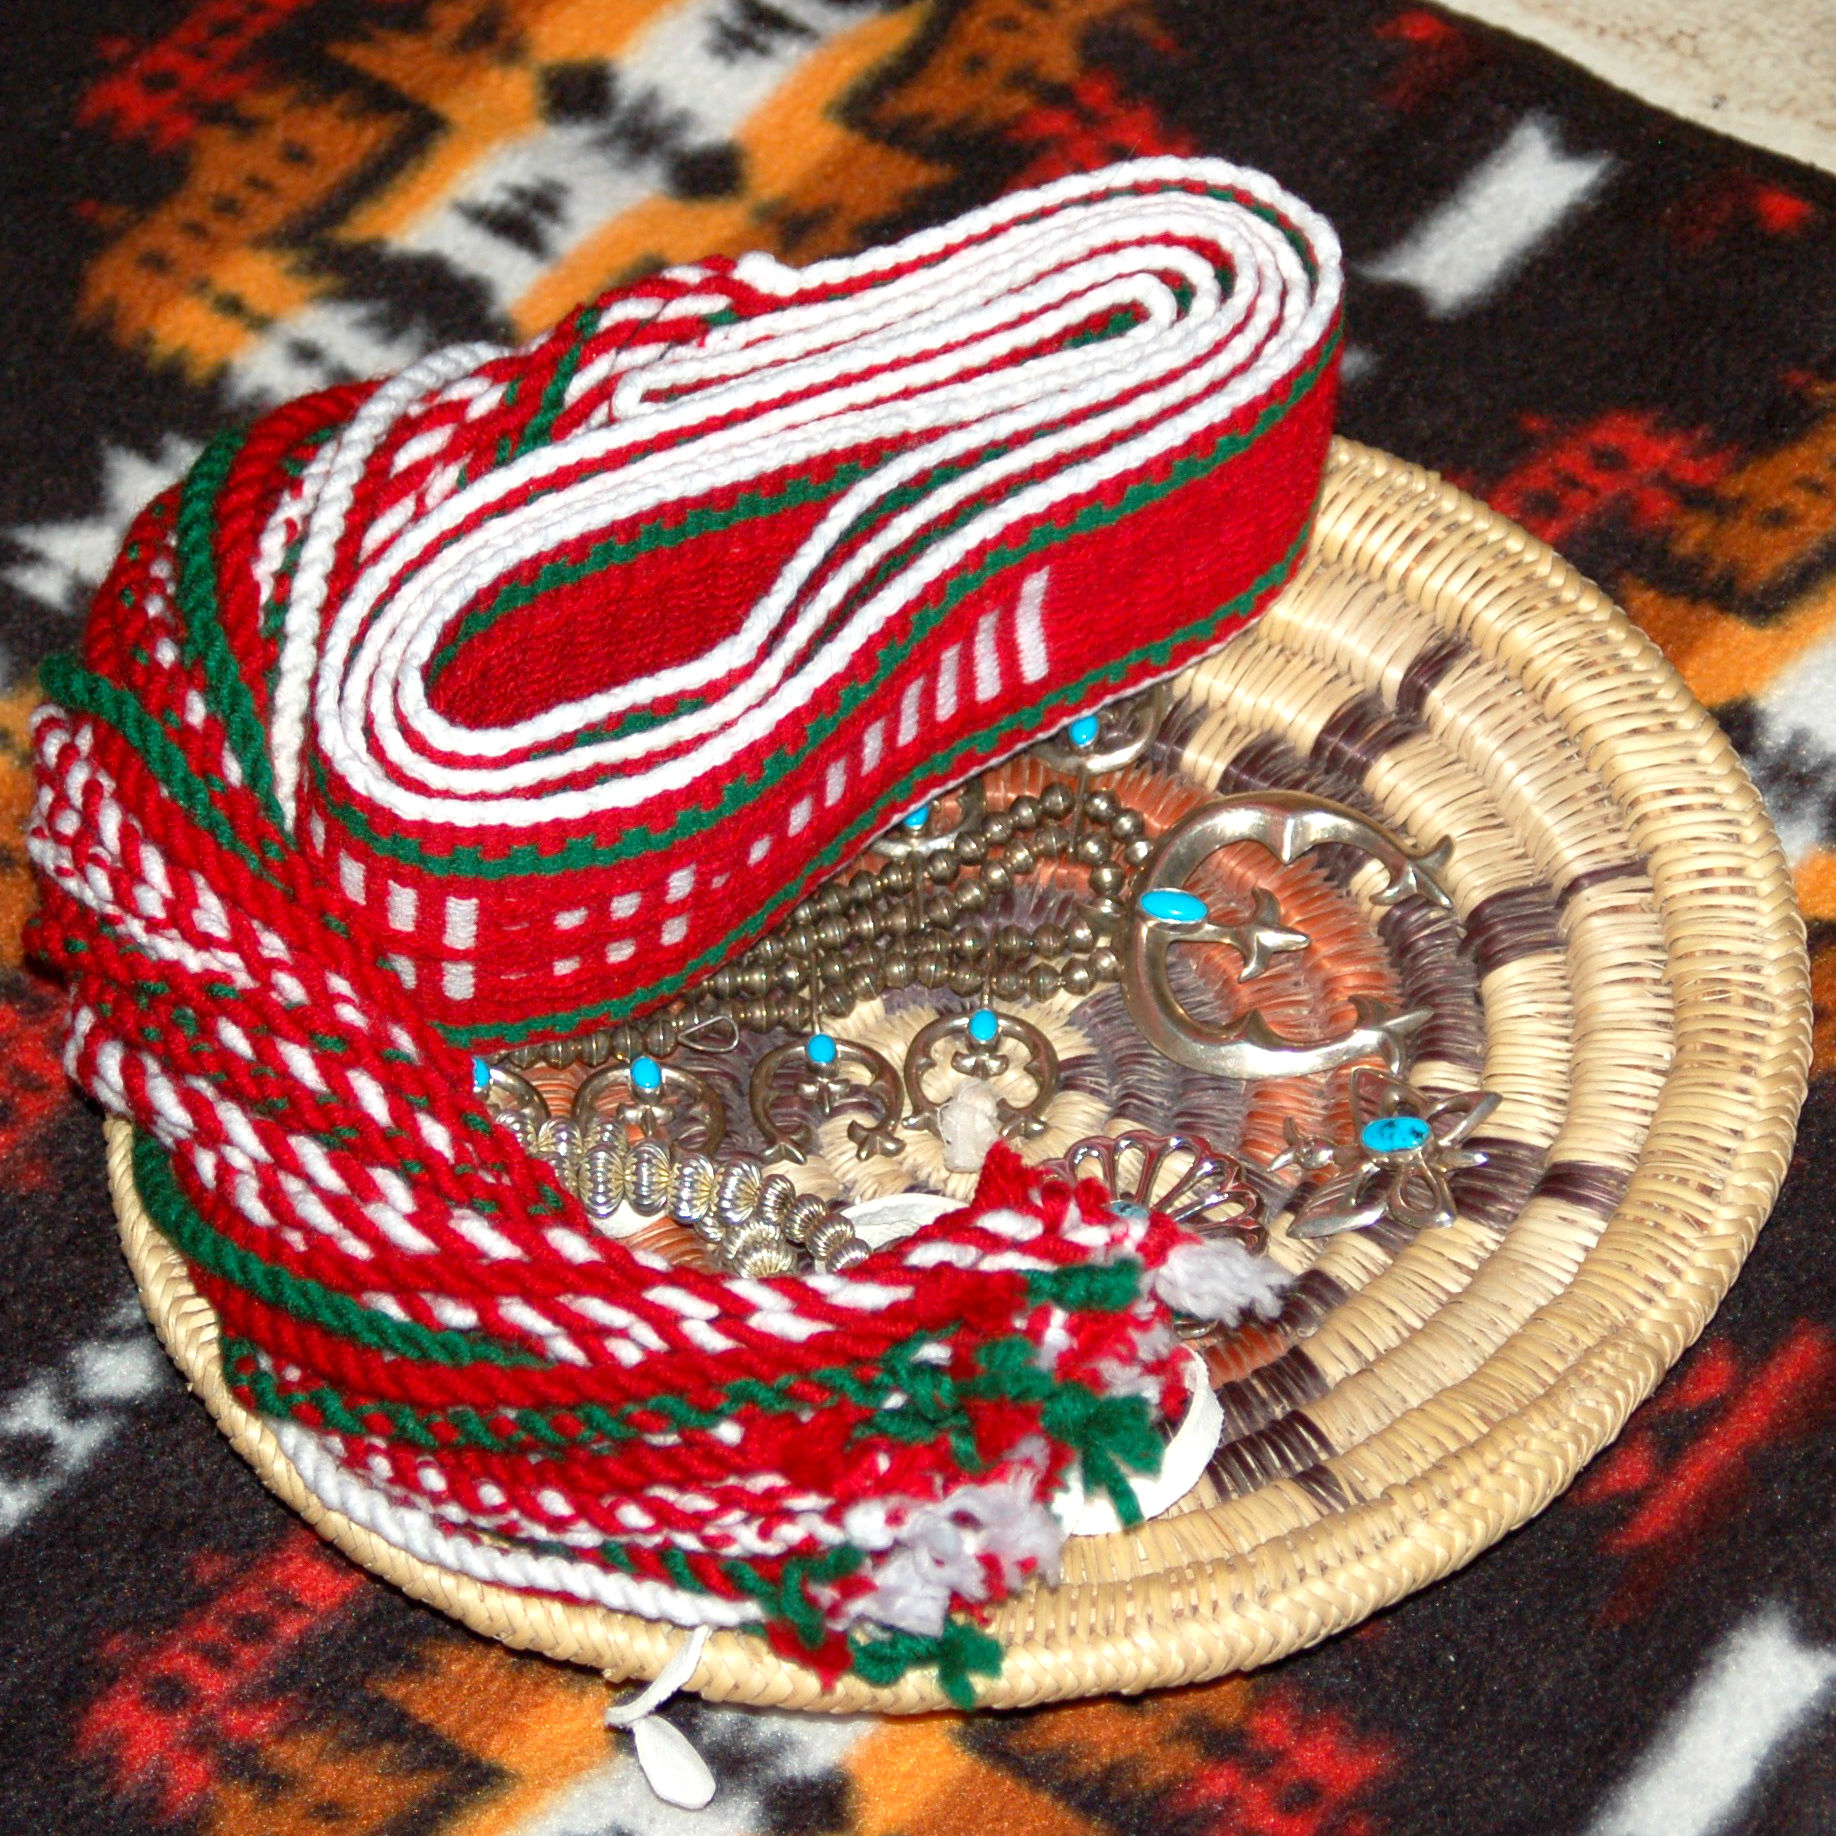 Navajo basket filled with sash belt and jewelry